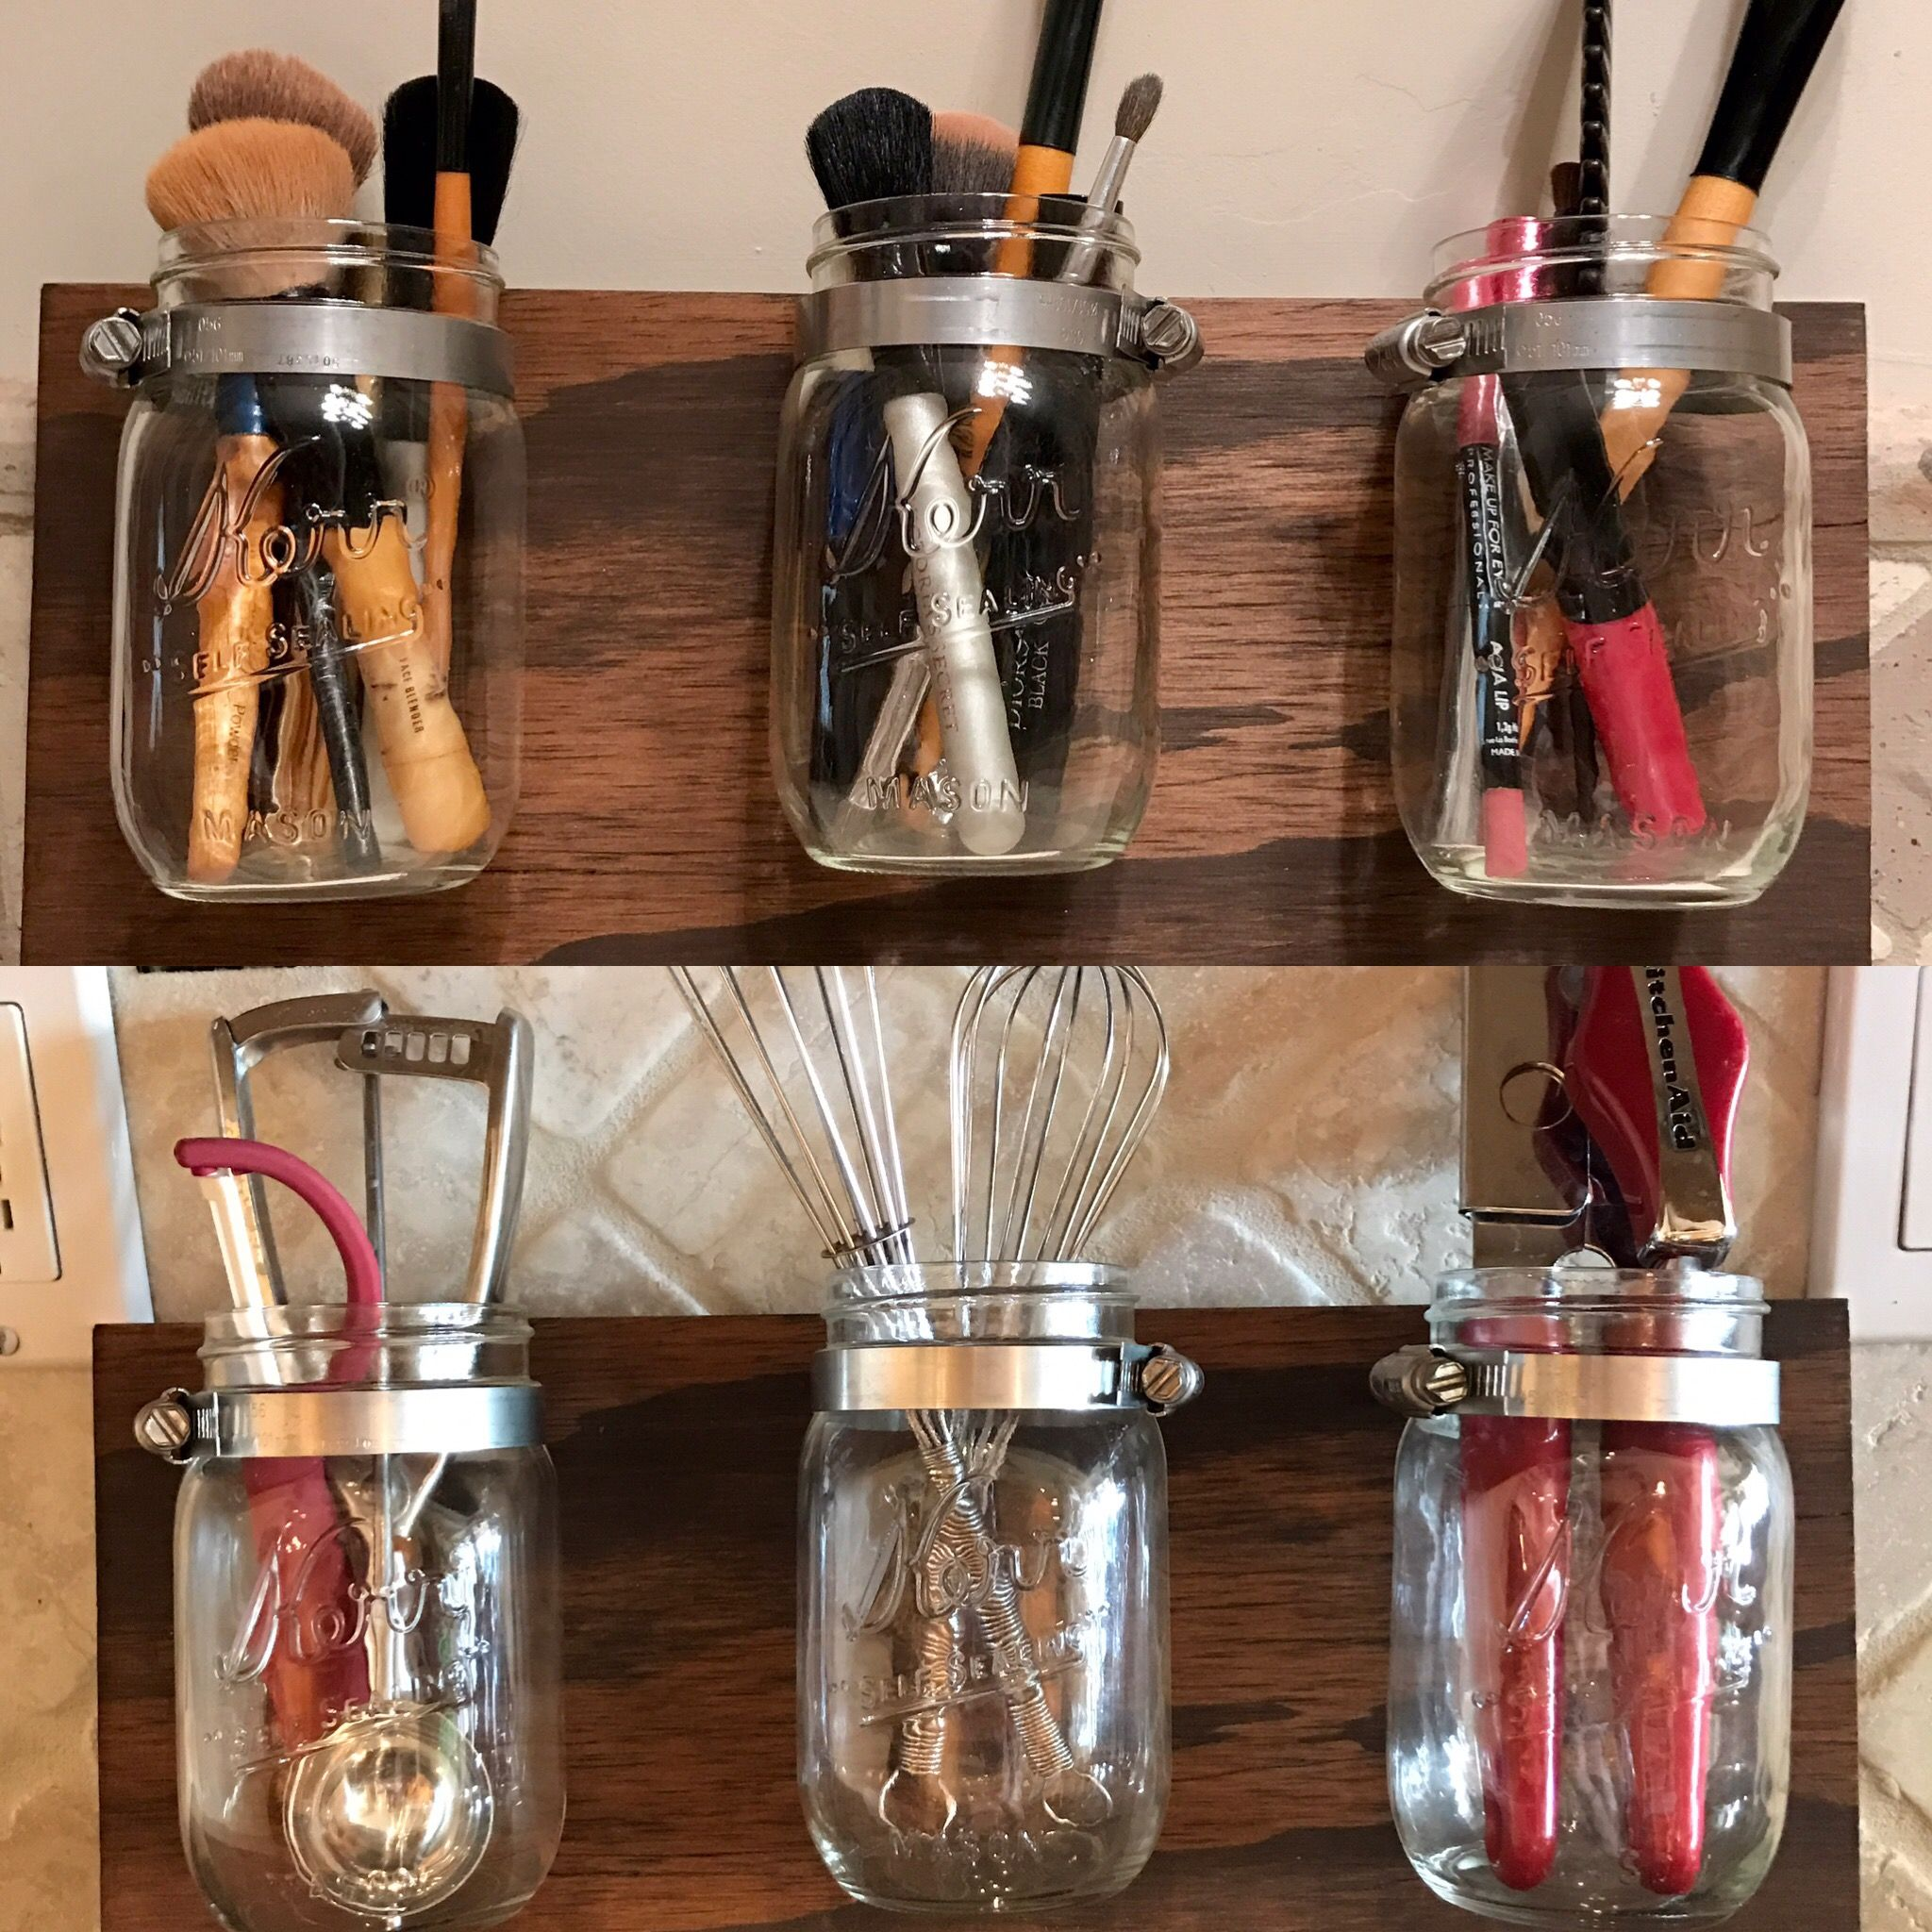 Mason Jar Organizer! Great for holding kitchen utensils, makeup, or for decoration!